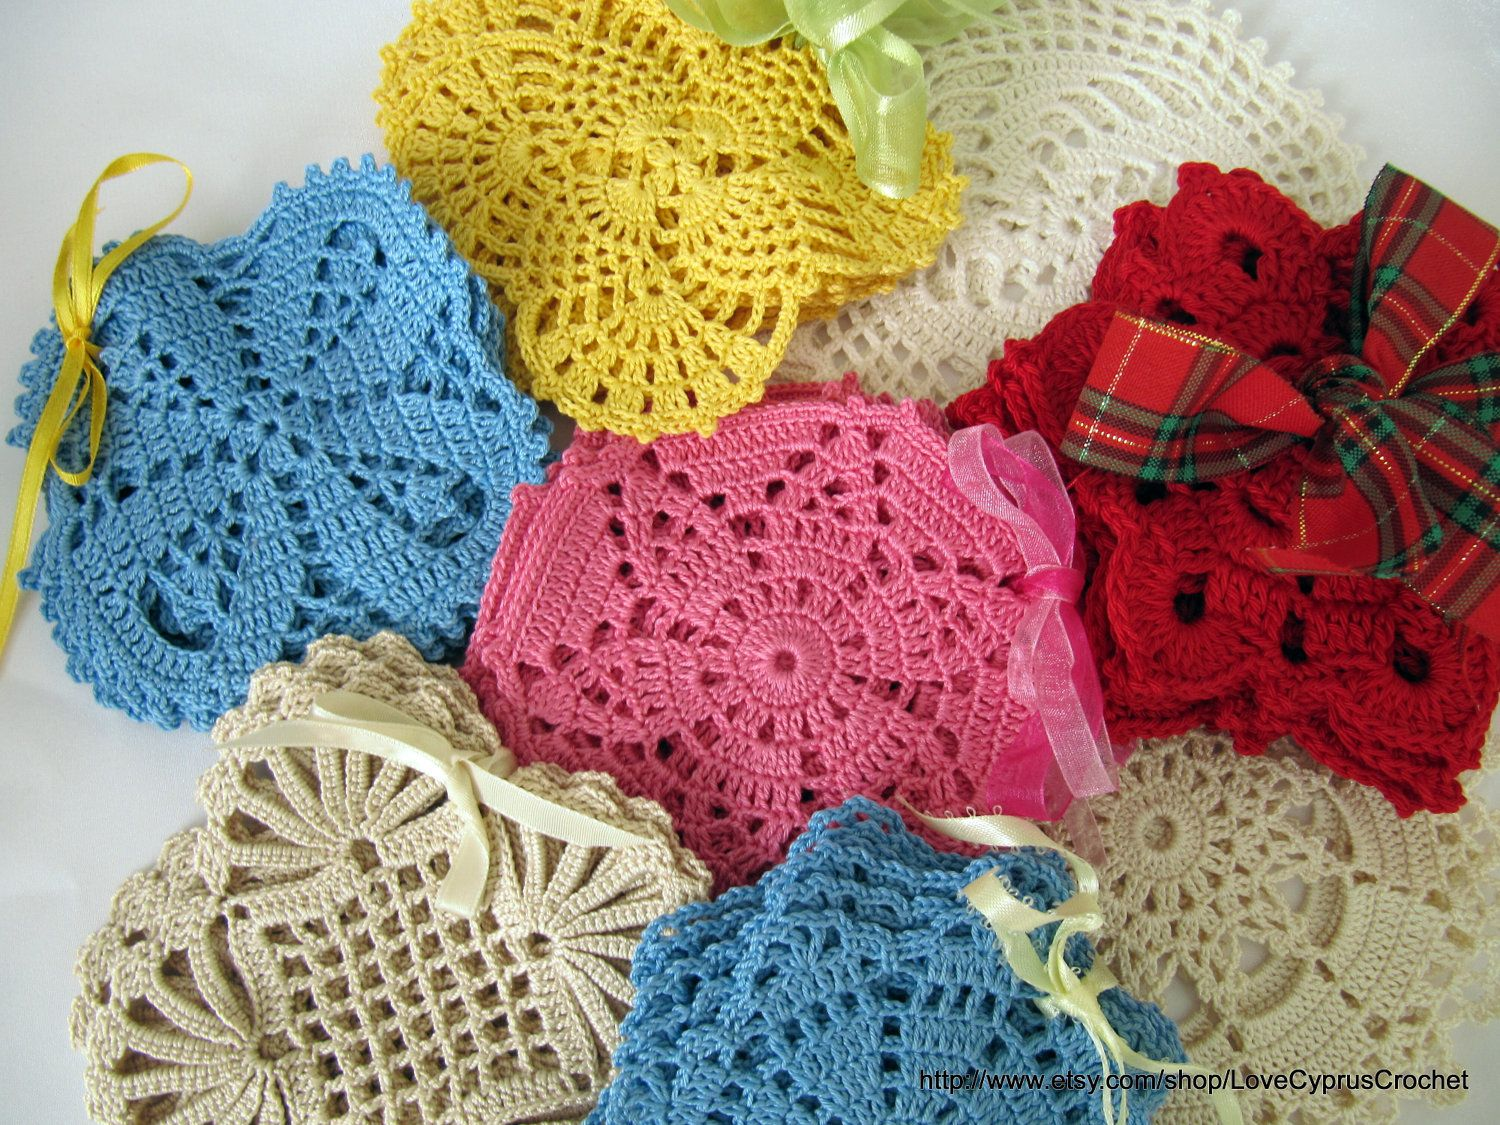 Pdf crochet coasters pattern number 4 pdf file crochet patterns pdf crochet coasters pattern number 4 pdf file crochet patterns diagrams coasters 8 bankloansurffo Gallery